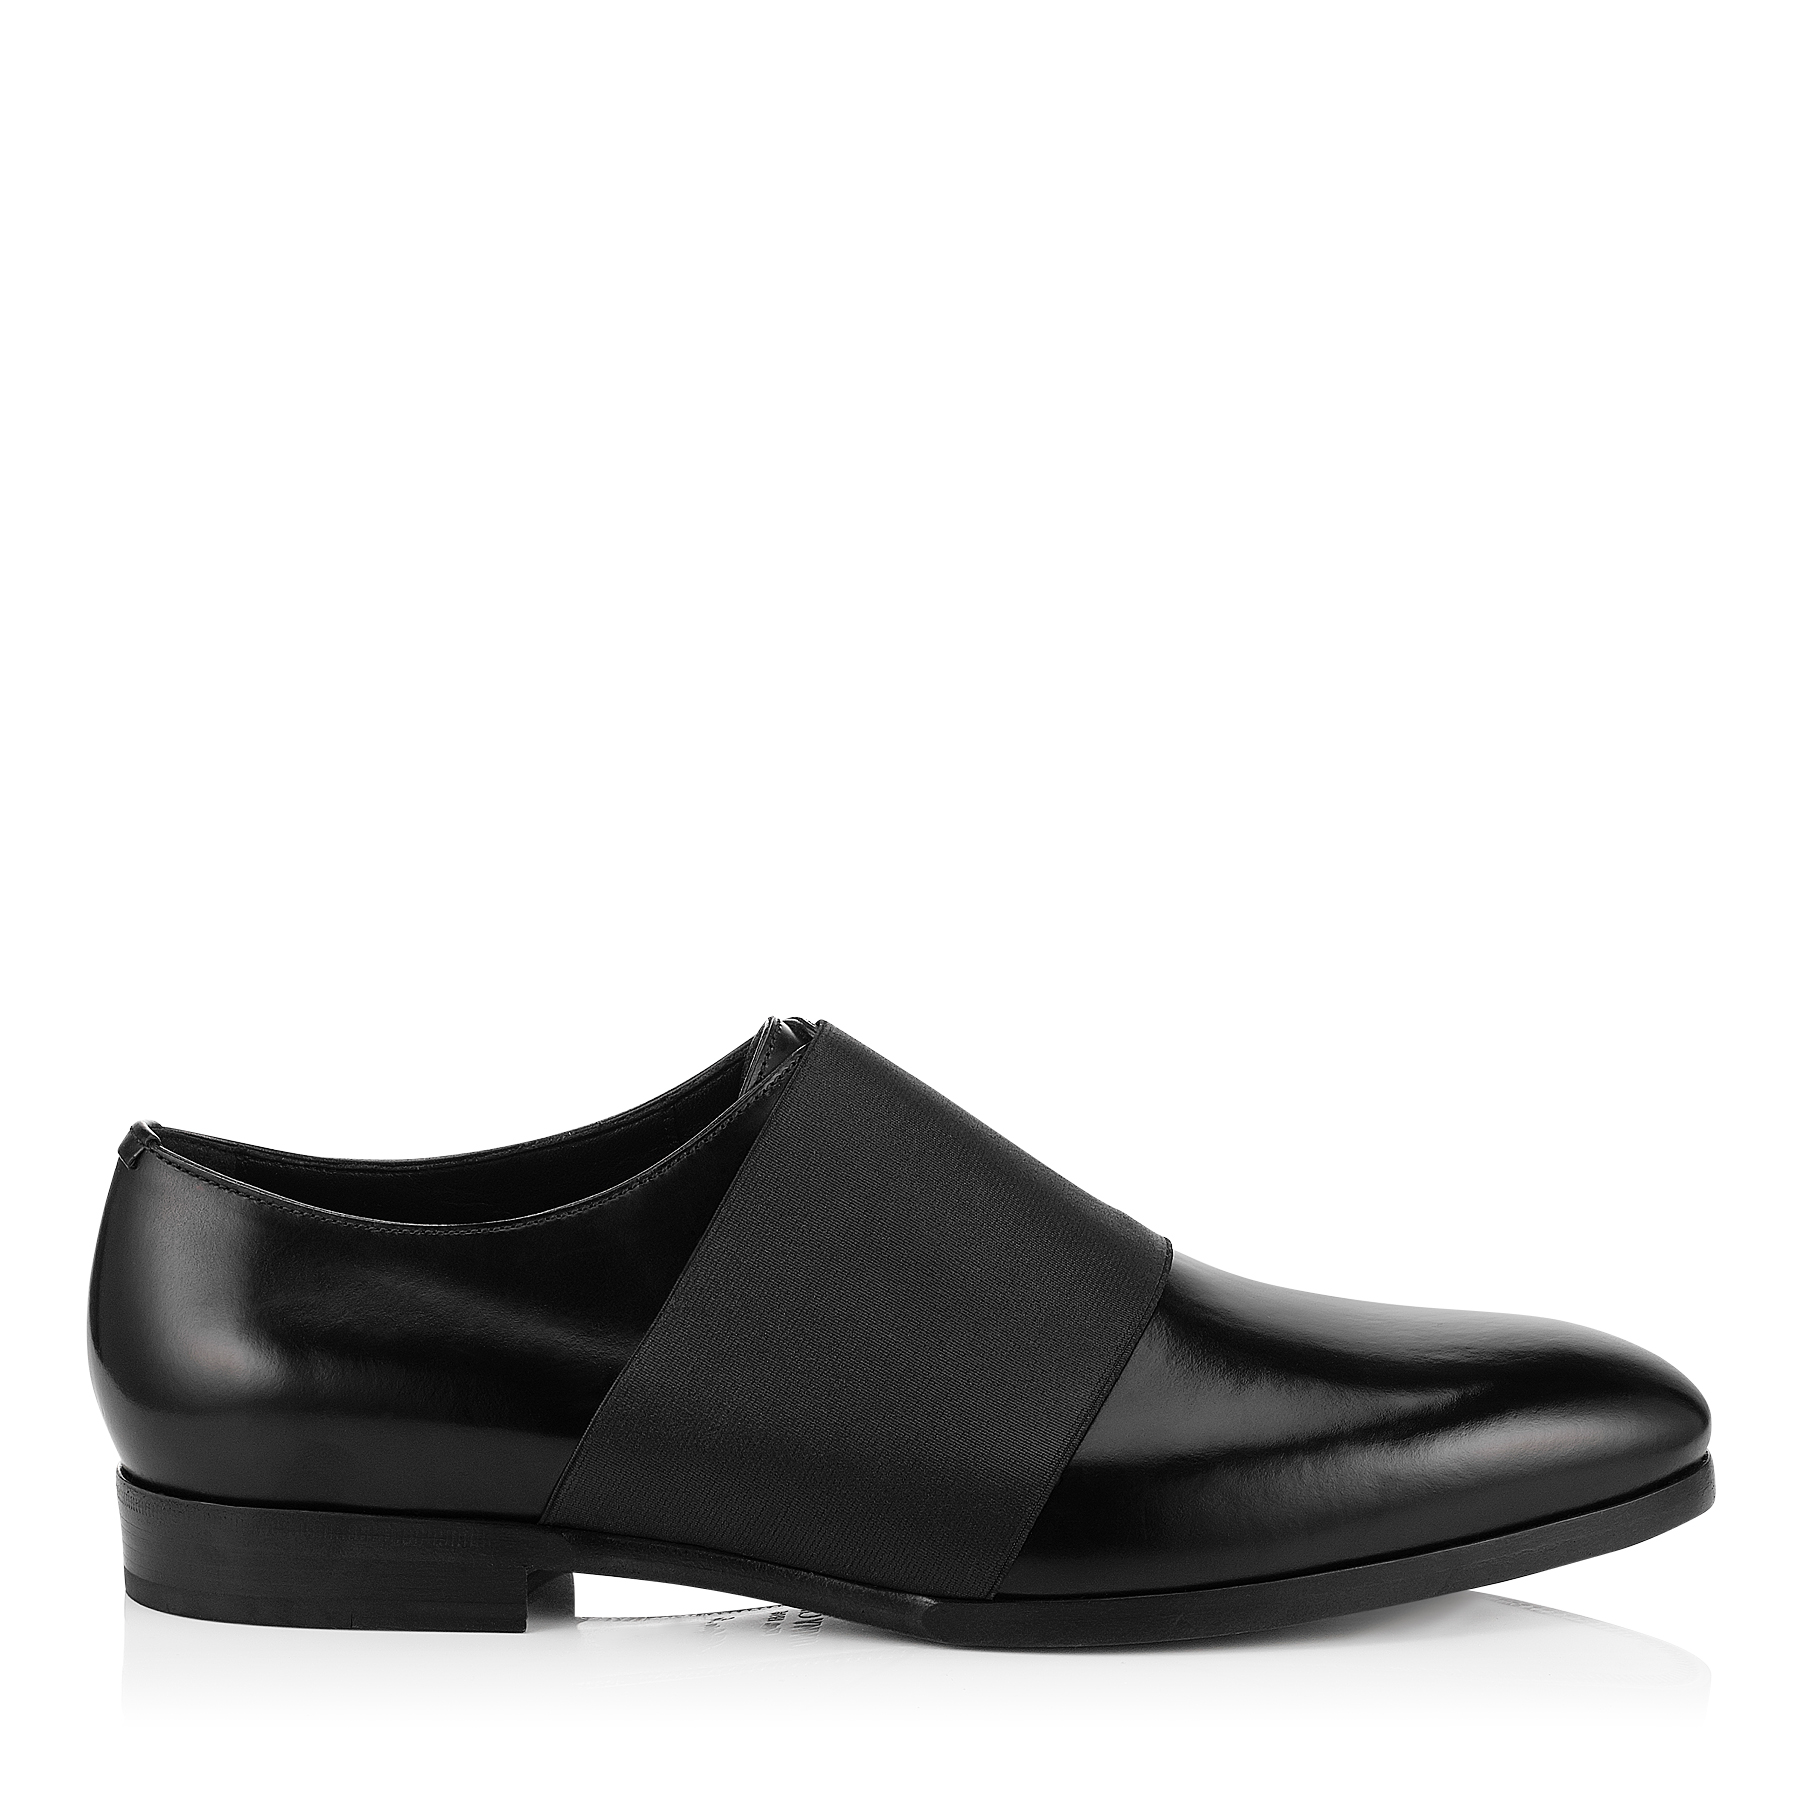 PETER Black Shiny Calf and Elastic Formal Shoes